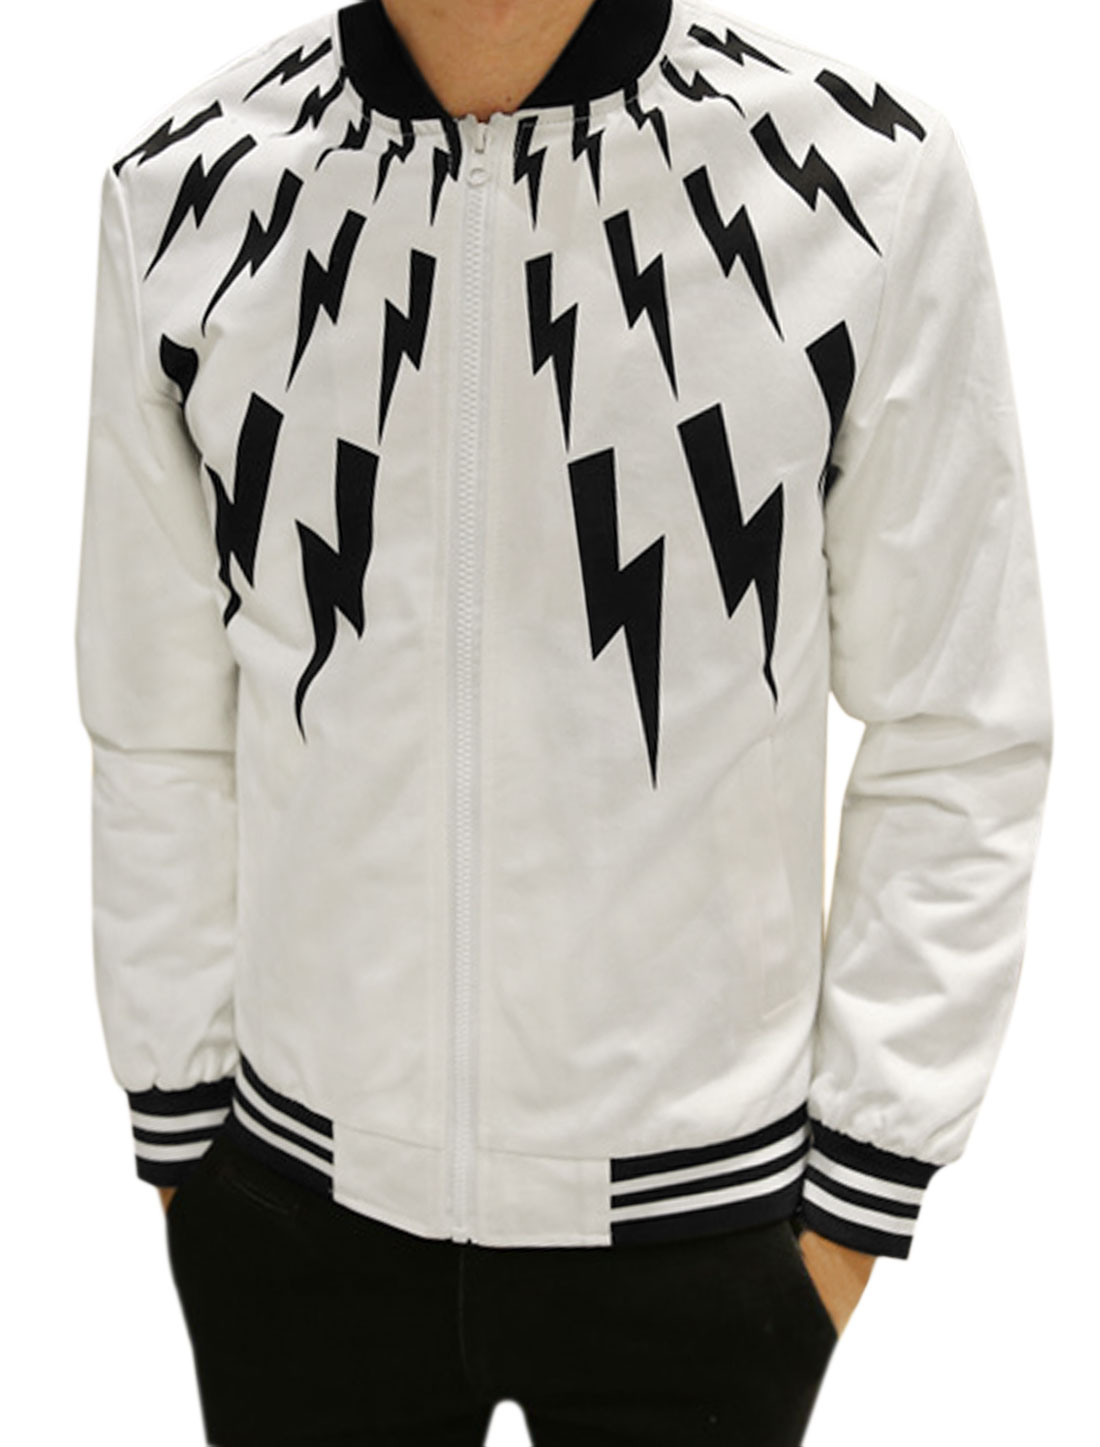 Men Zip Up Slant Pockets Stripes Lightning Jacket White S